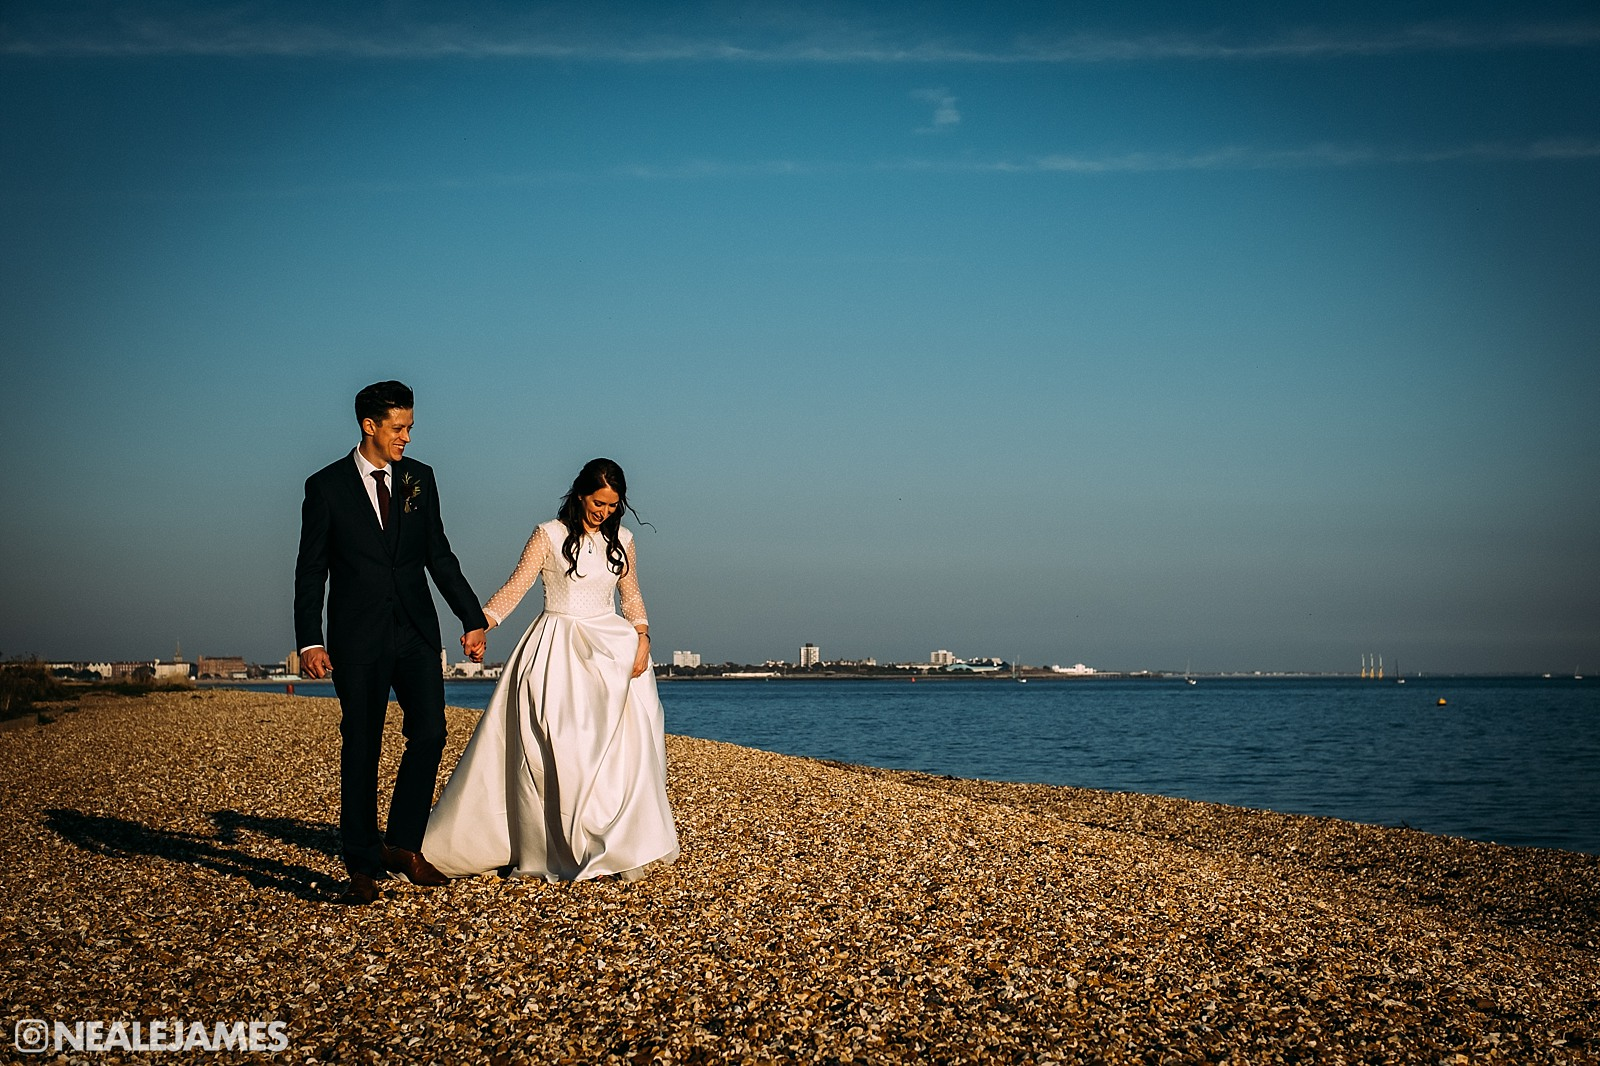 A colour photograph featuring a couple walking on the beach in Gosport, Portsmouth